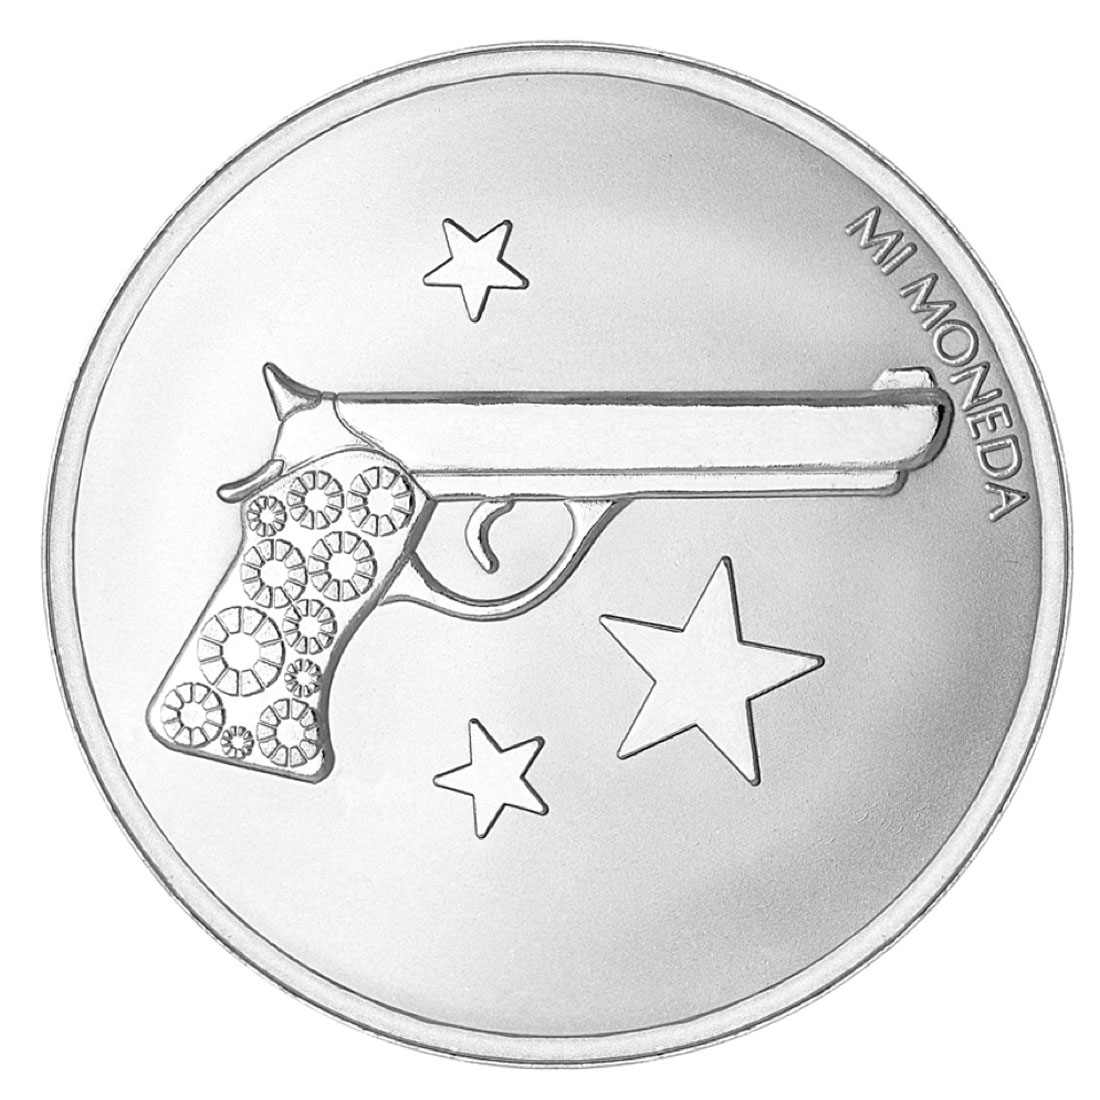 Mi Moneda Aim High & Pistol Silver-Plated Disc - ONLY 2 LEFT